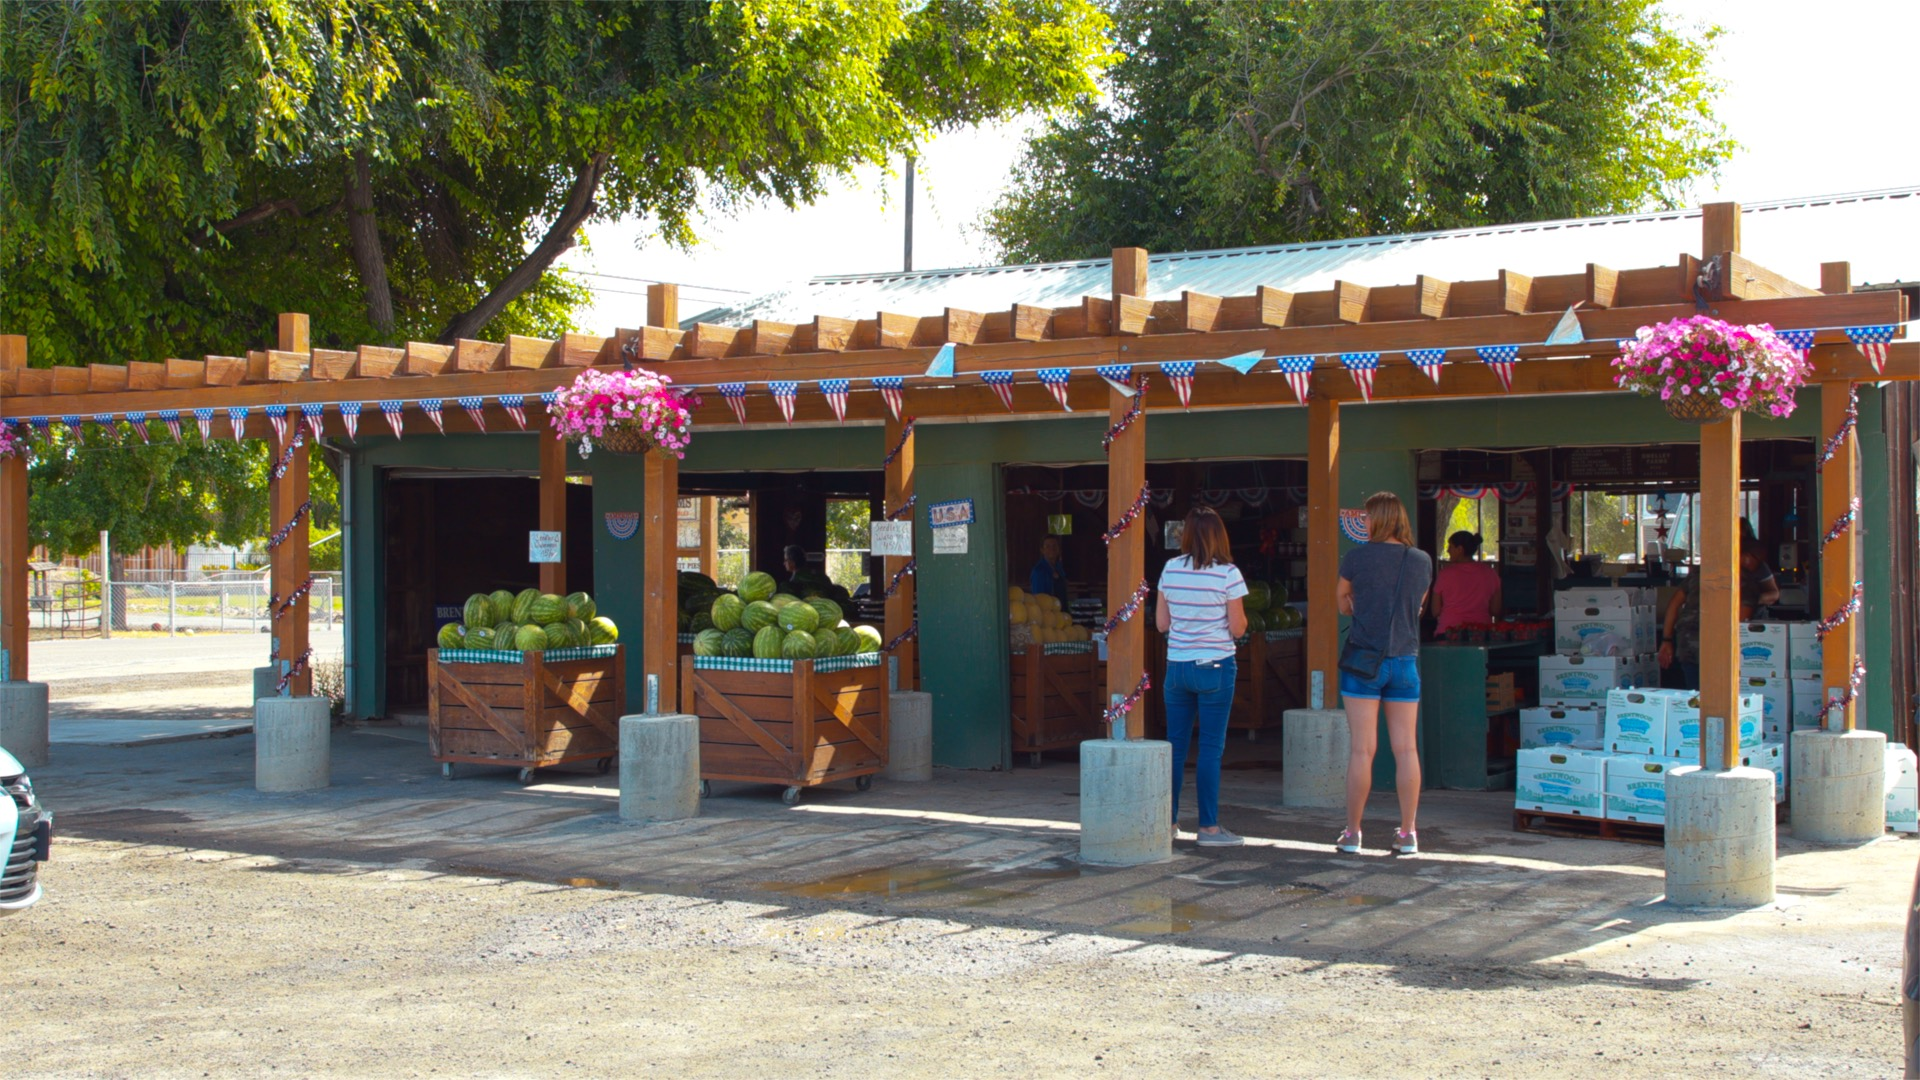 Dwelley Family Farms Farm Stand